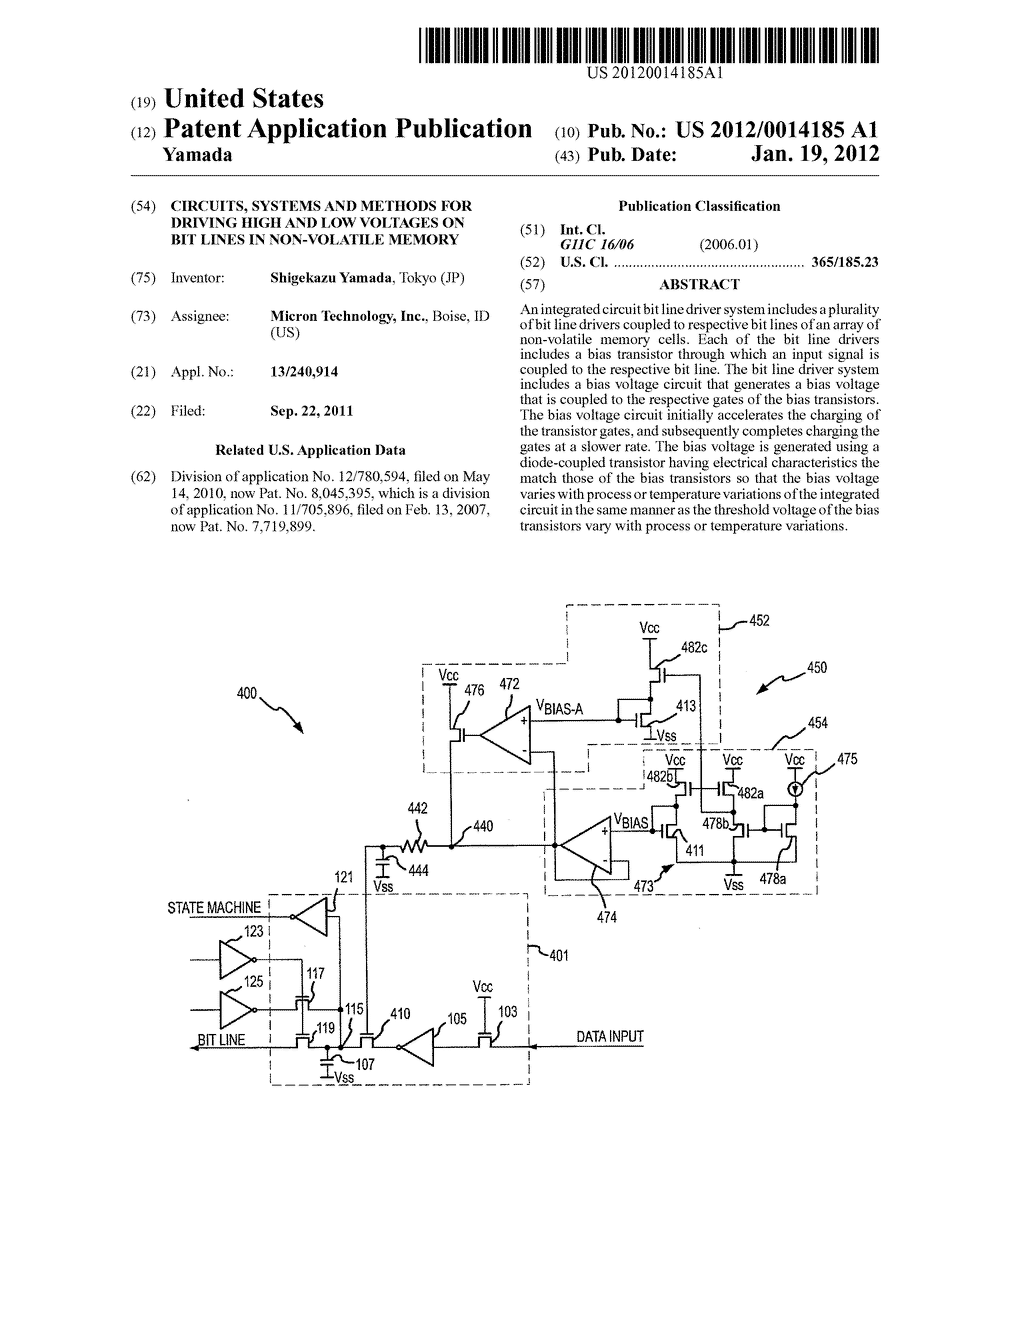 CIRCUITS, SYSTEMS AND METHODS FOR DRIVING HIGH AND LOW VOLTAGES ON BIT     LINES IN NON-VOLATILE MEMORY - diagram, schematic, and image 01